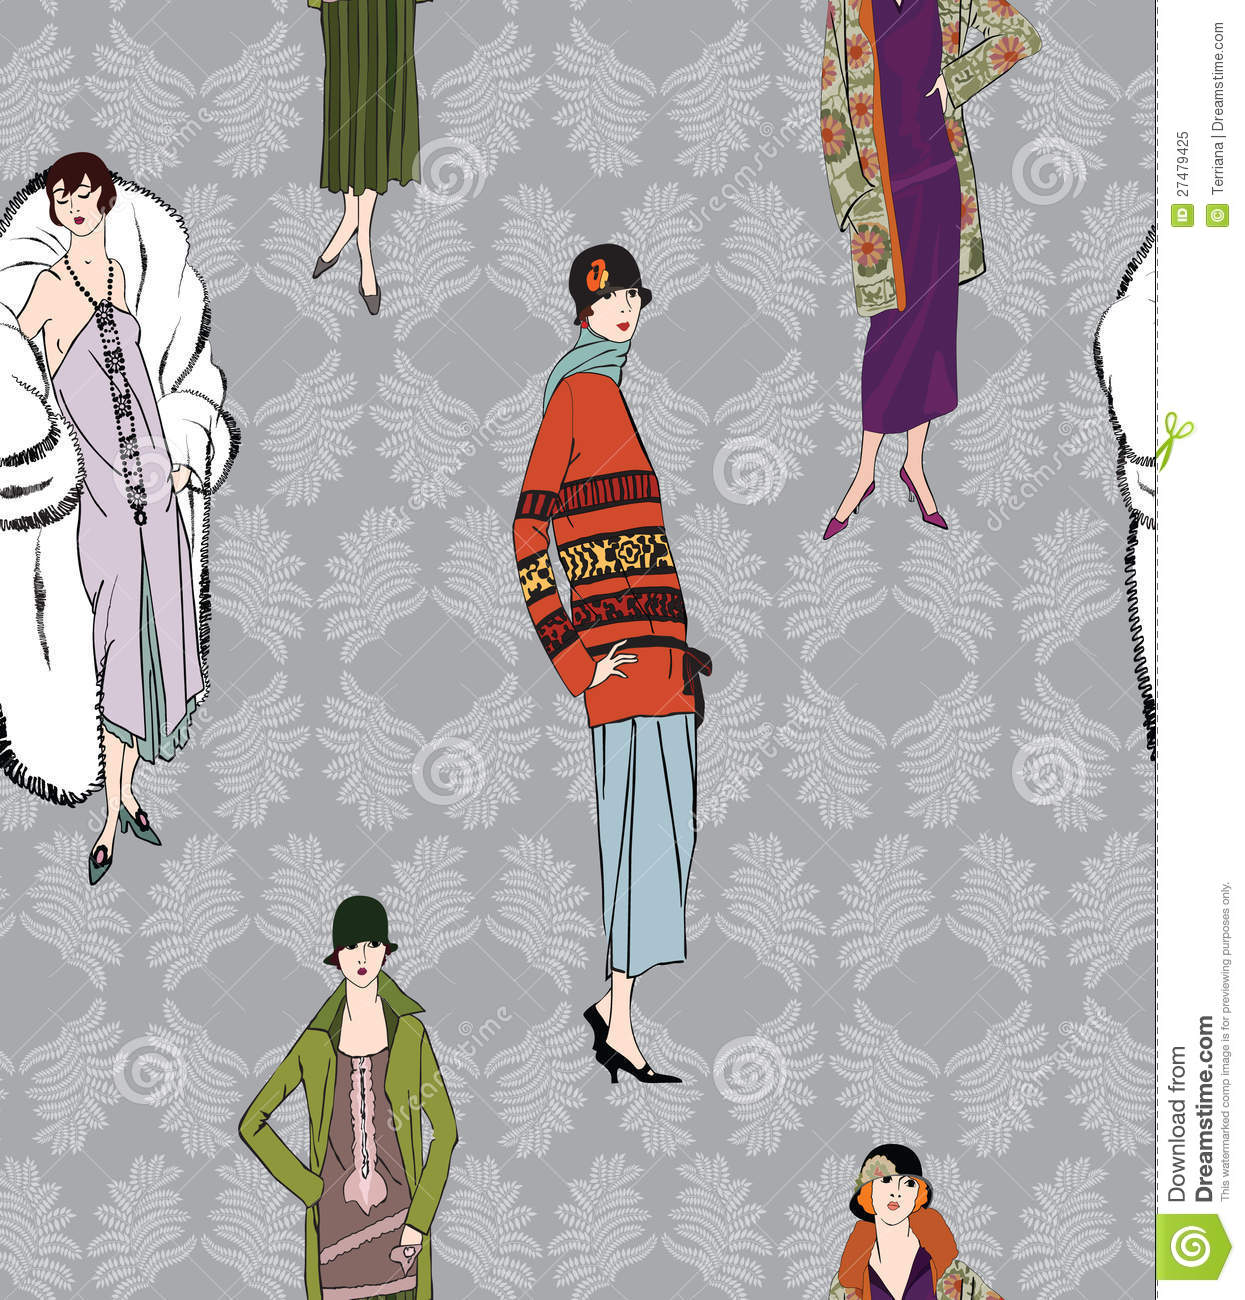 Flapper Girls 20s Style Retro Fashion Party Vector Illustration 27587144